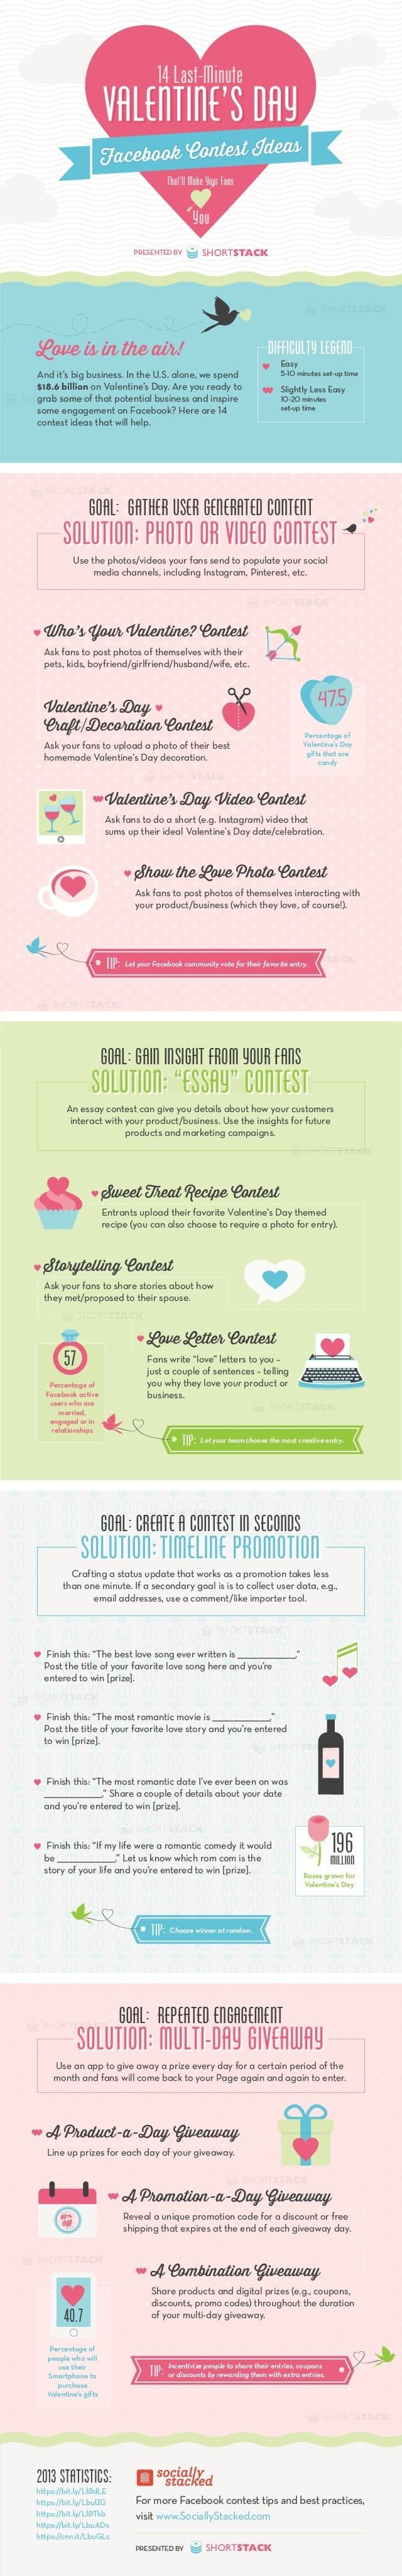 how to use twitter for business tips and resources four visual content marketing valentines day campaigns using facebook instagram snapchat and